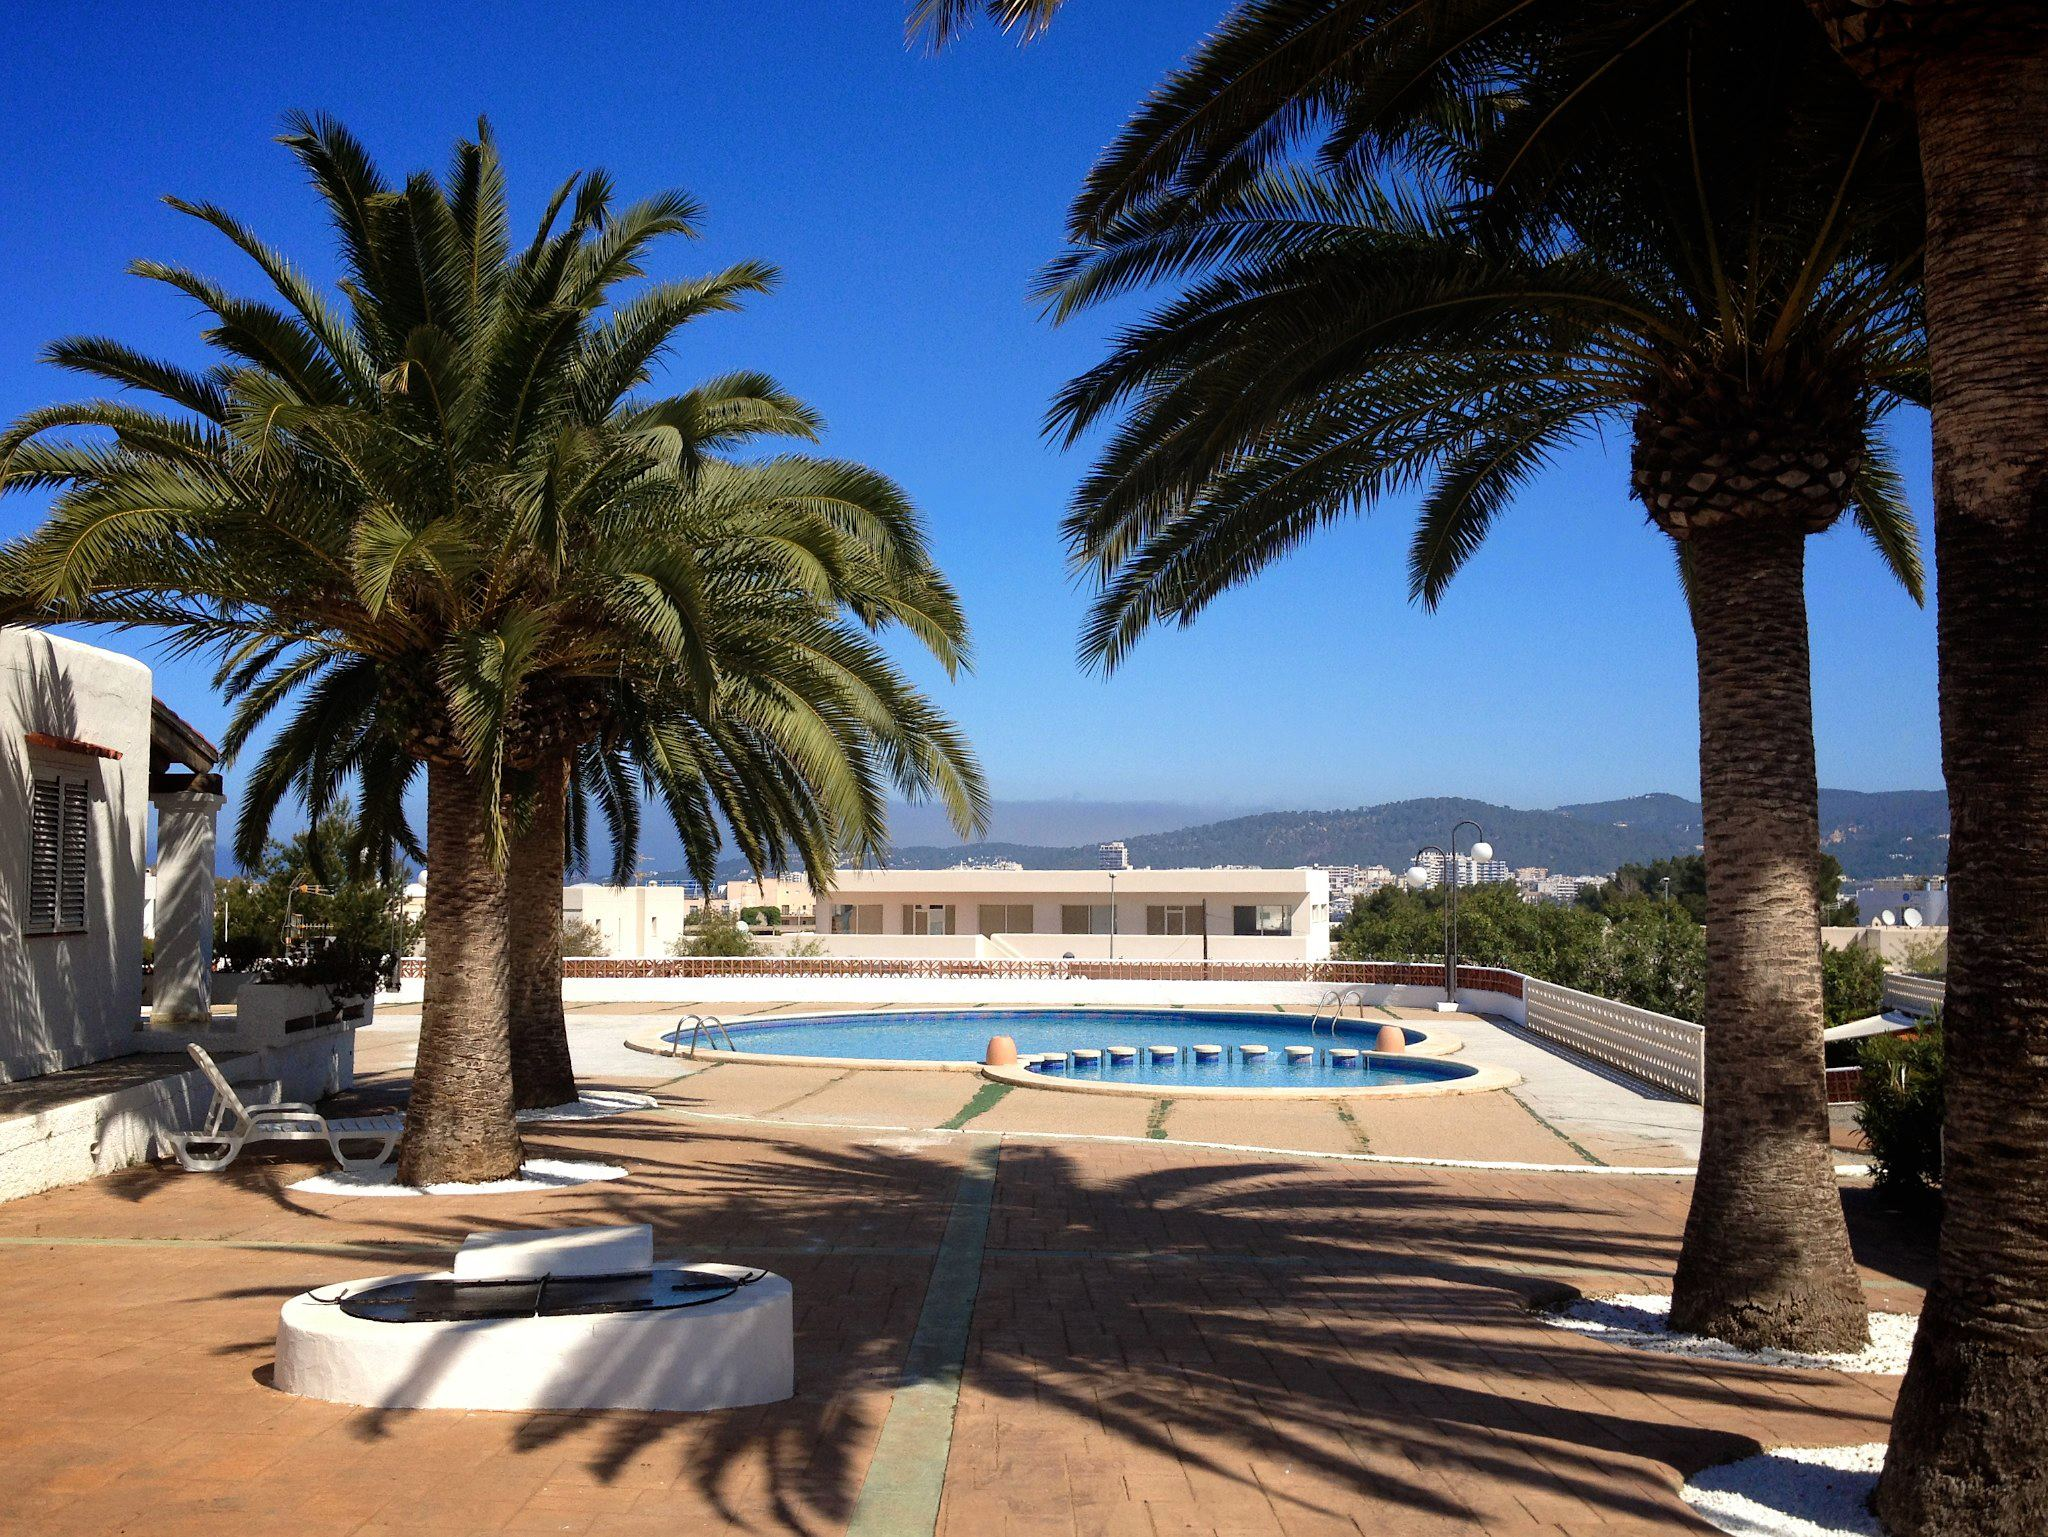 Sunshine, Sangria, Pool Diving, Friends, Fun in Ibiza, Spain on Holiday (4)